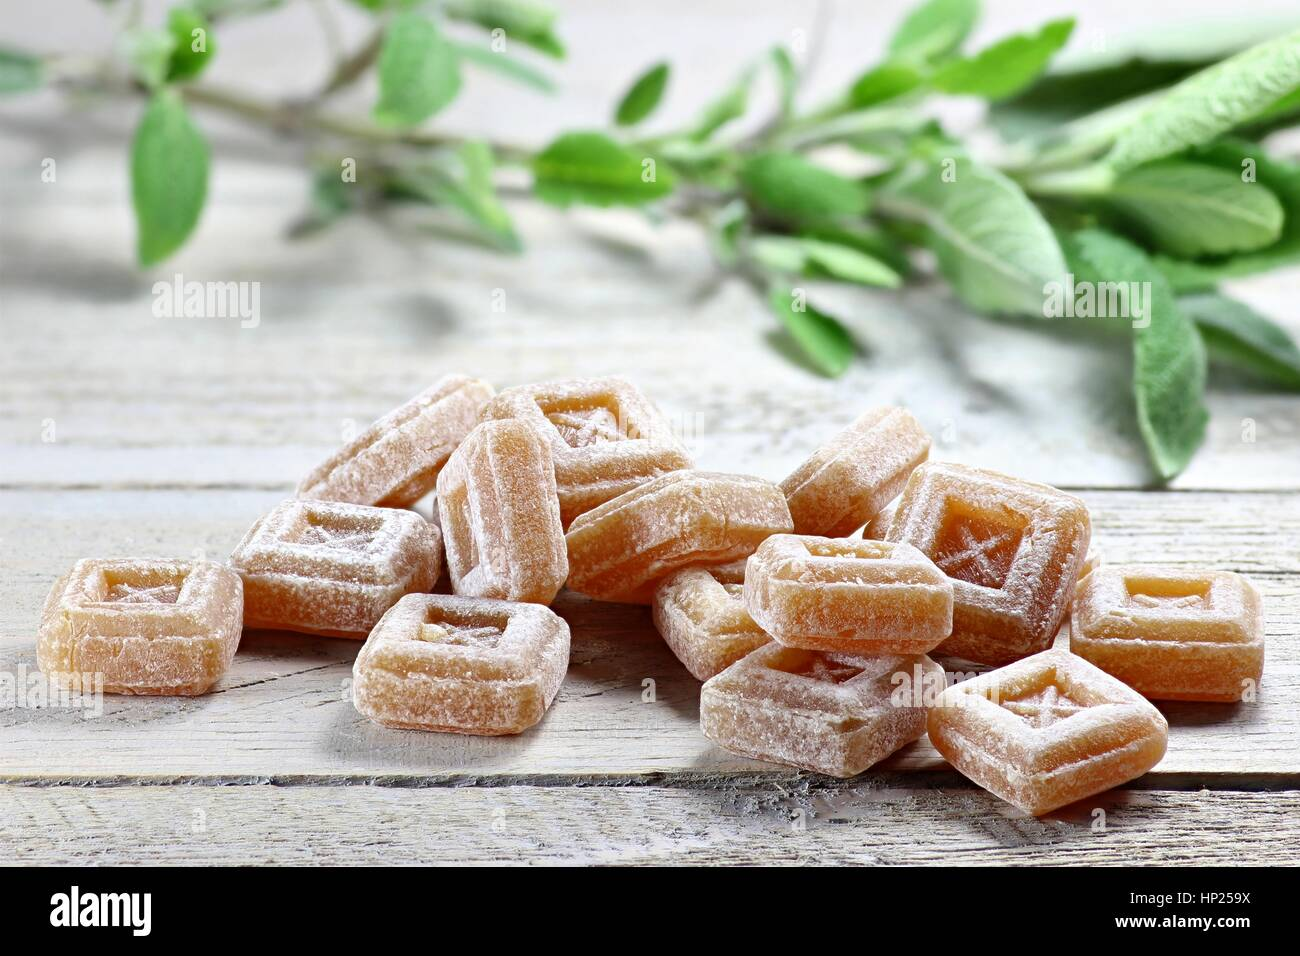 sage candies on wooden background - Stock Image